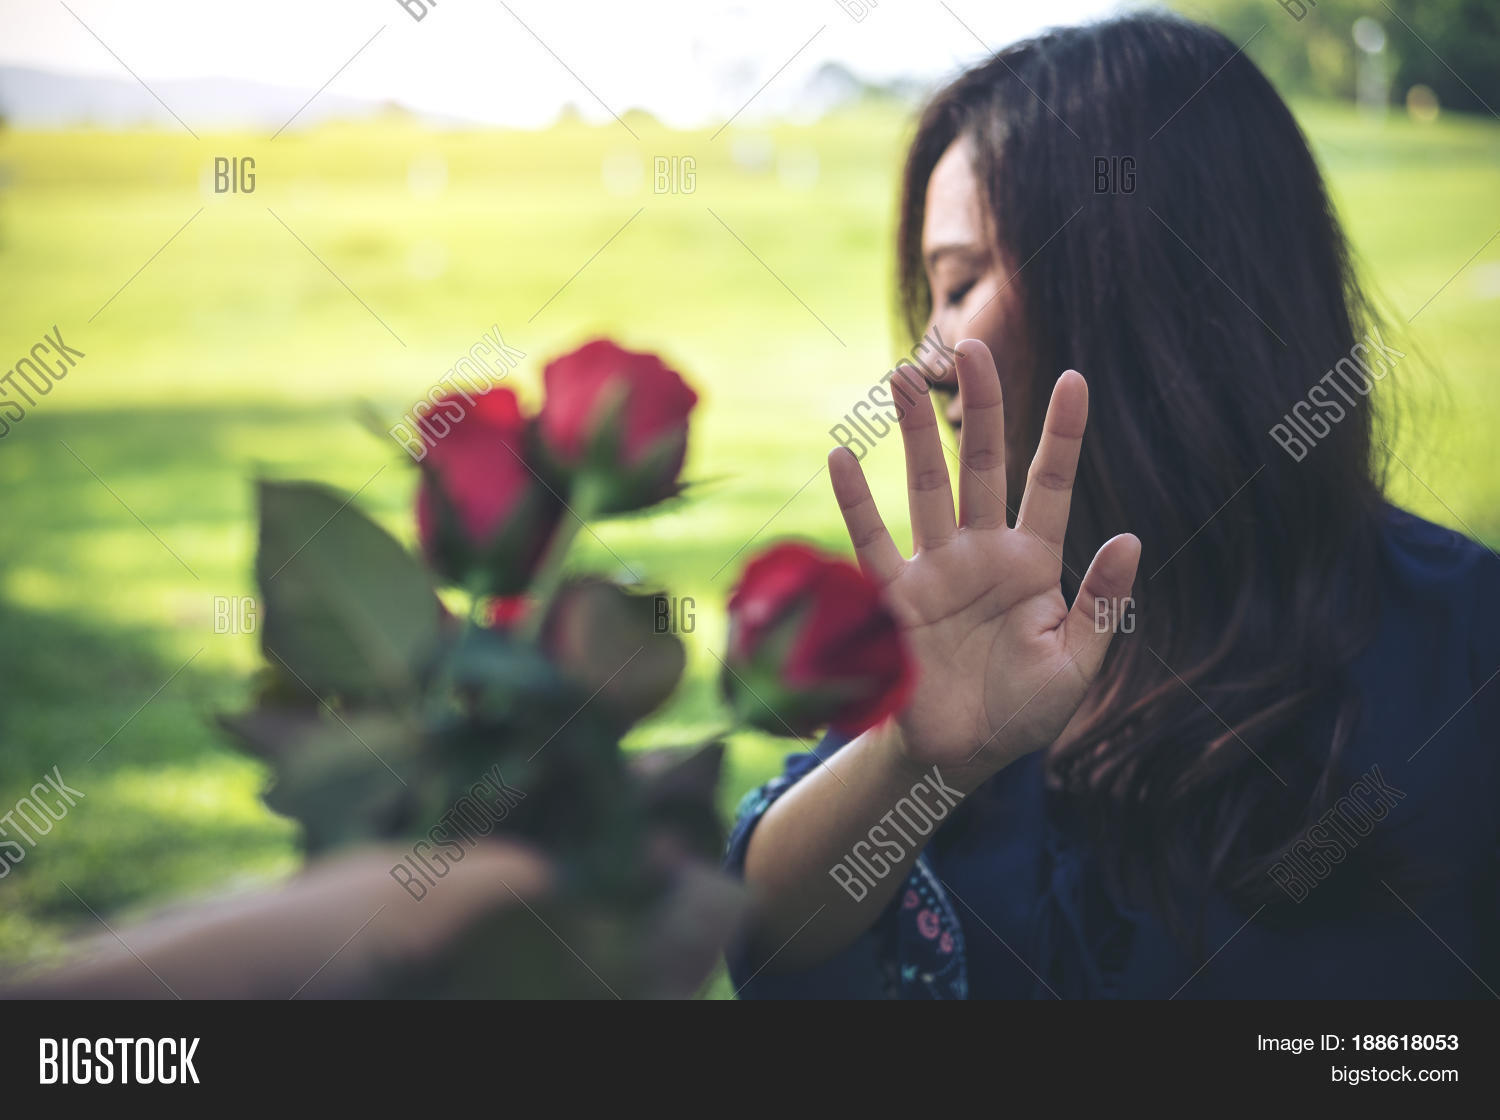 big sky asian girl personals Montana asian big sky catholic singles we offer a truly catholic environment, thousands of members, and highly compatible matches based on your personality, shared faith, and lifestyle.